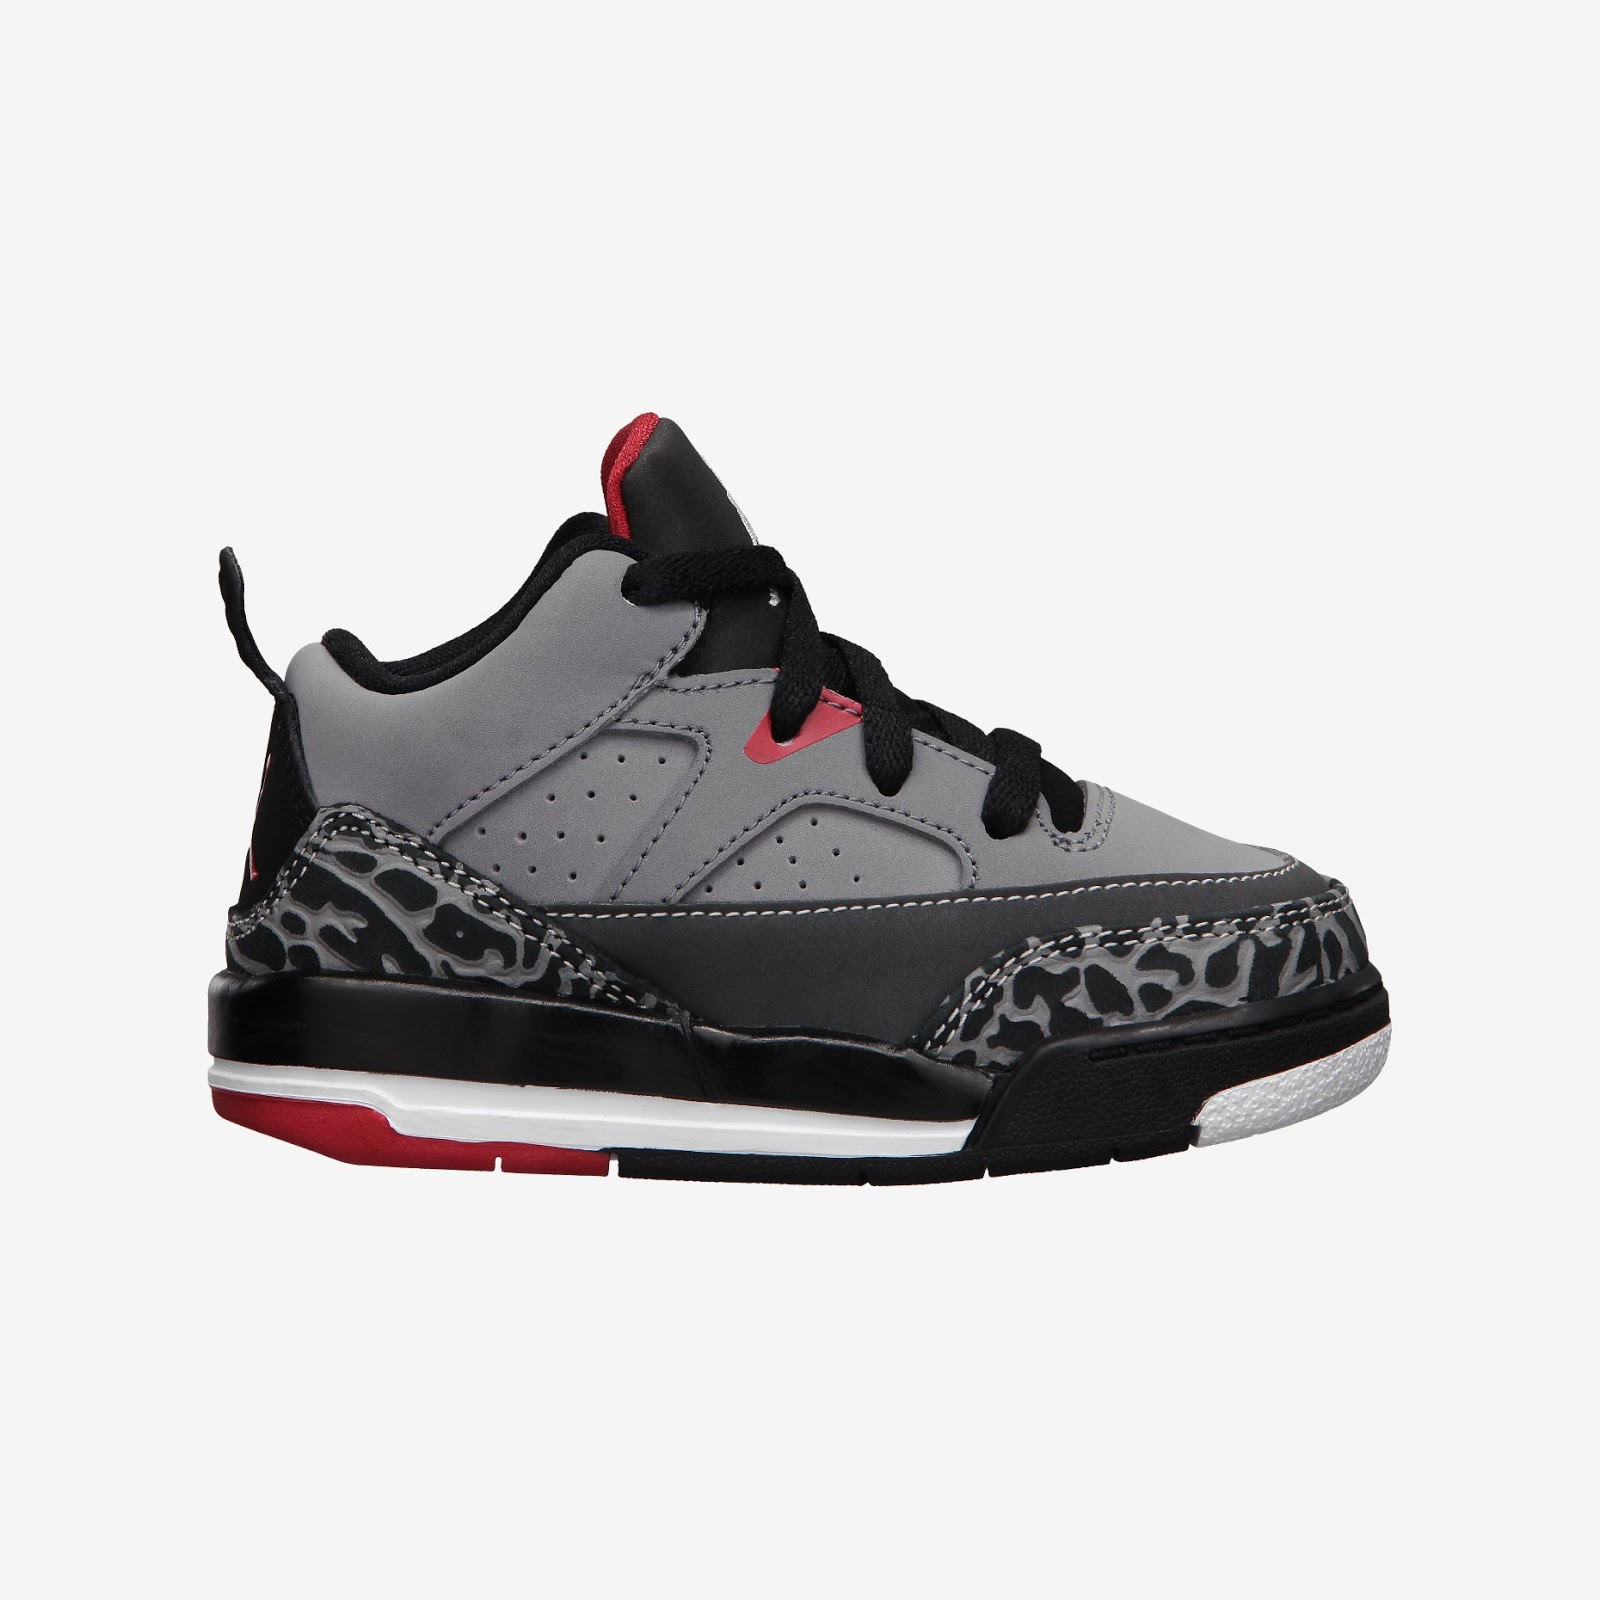 official photos 95929 0ec30 Jordan Son Of Mars Low Toddler Boys  Shoe. Cement Grey White-Black-Fire Red  ...